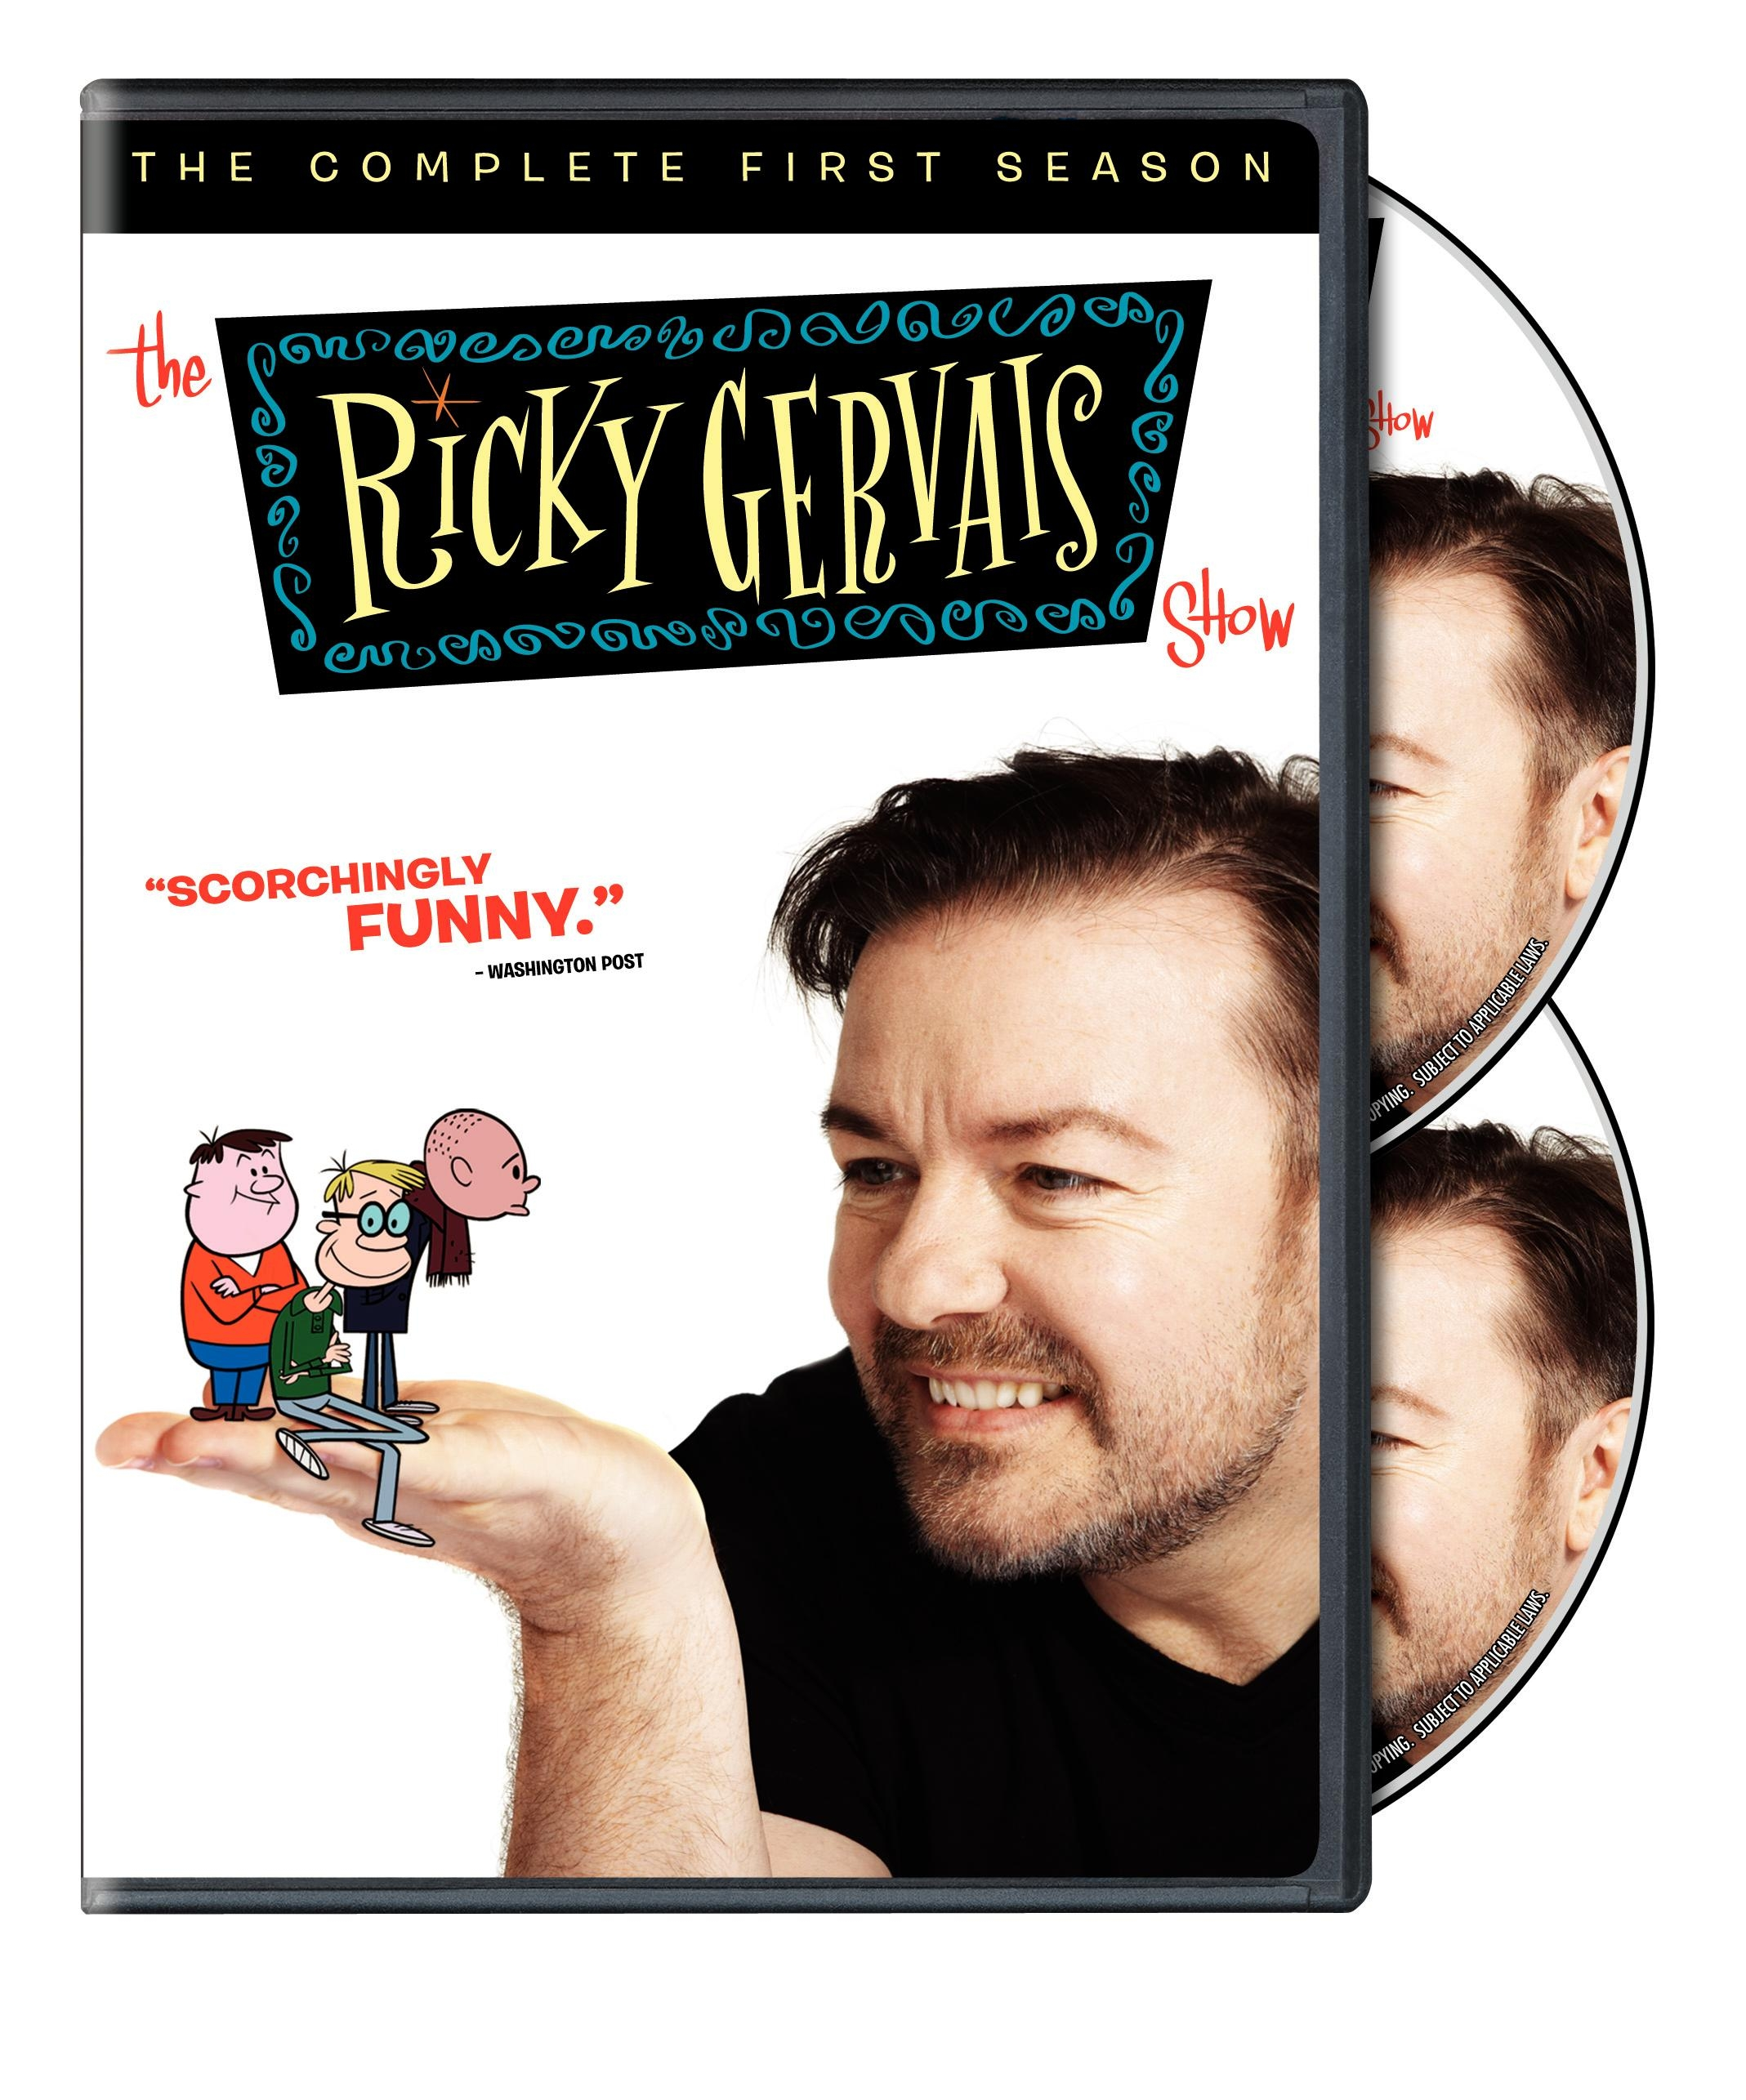 kpontv on the ricky gervais show: season 1 dvd Â« thetwocents